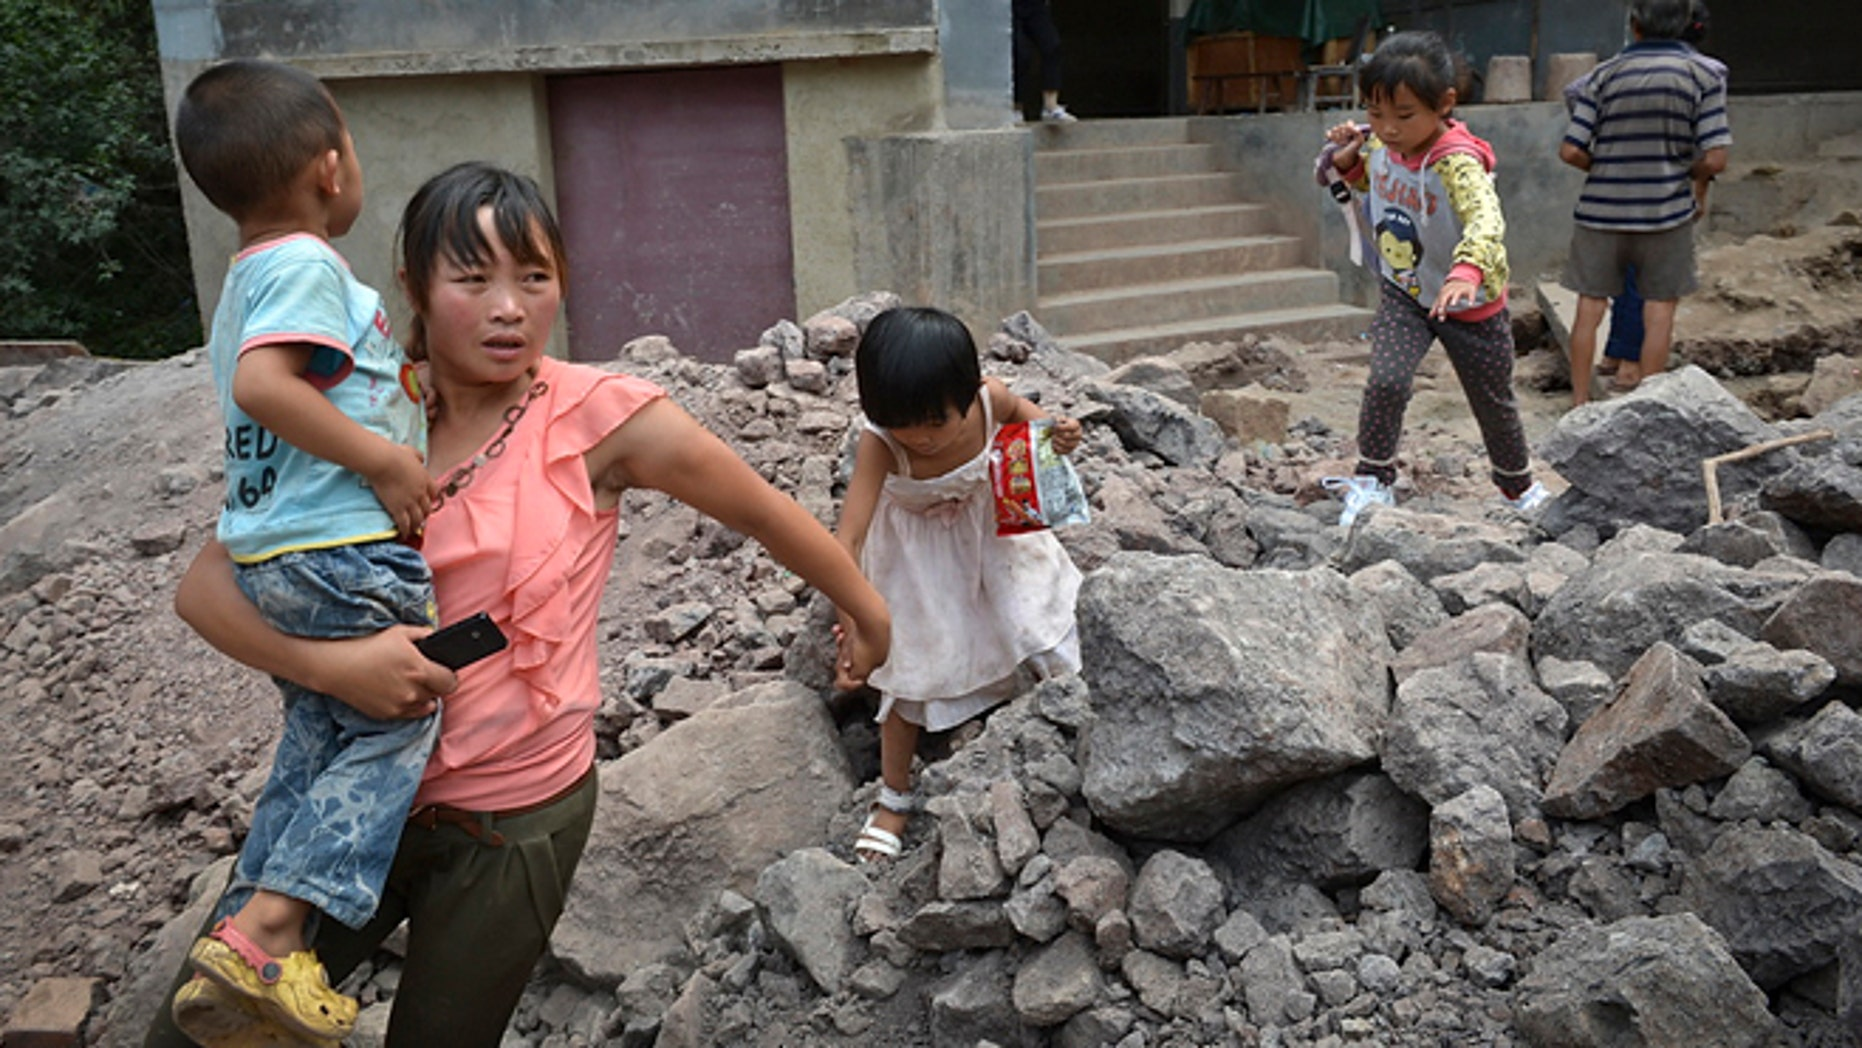 Sept. 8, 2012: A woman brings the children evacuate from an earthquake hit Luozehe town in Yiliang county in southwest China's Yunnan province.